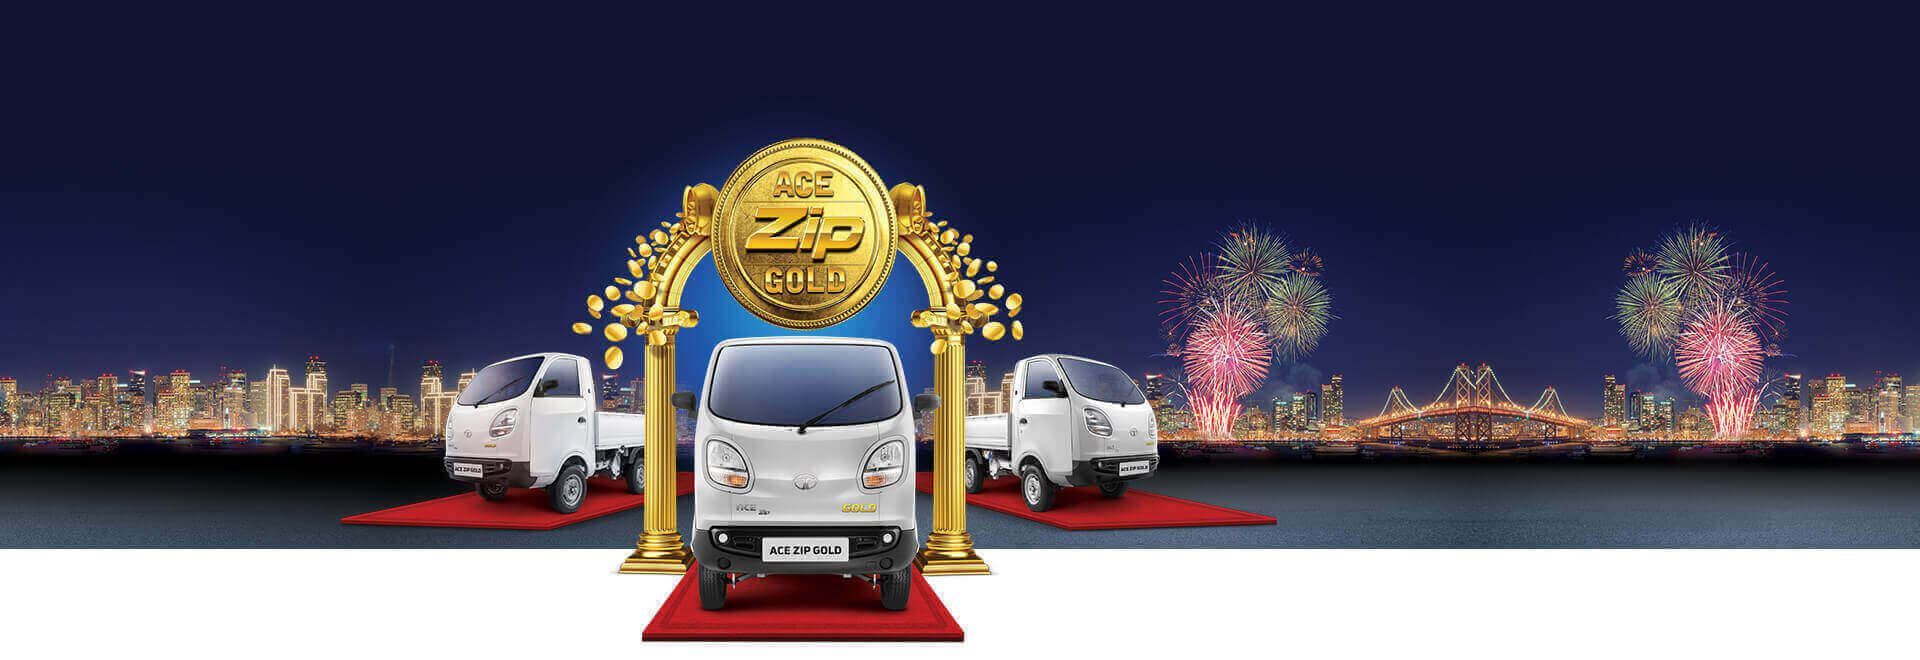 Tata Small Commercial Vehicle - Tata Ace Chota Hathi On Road Price